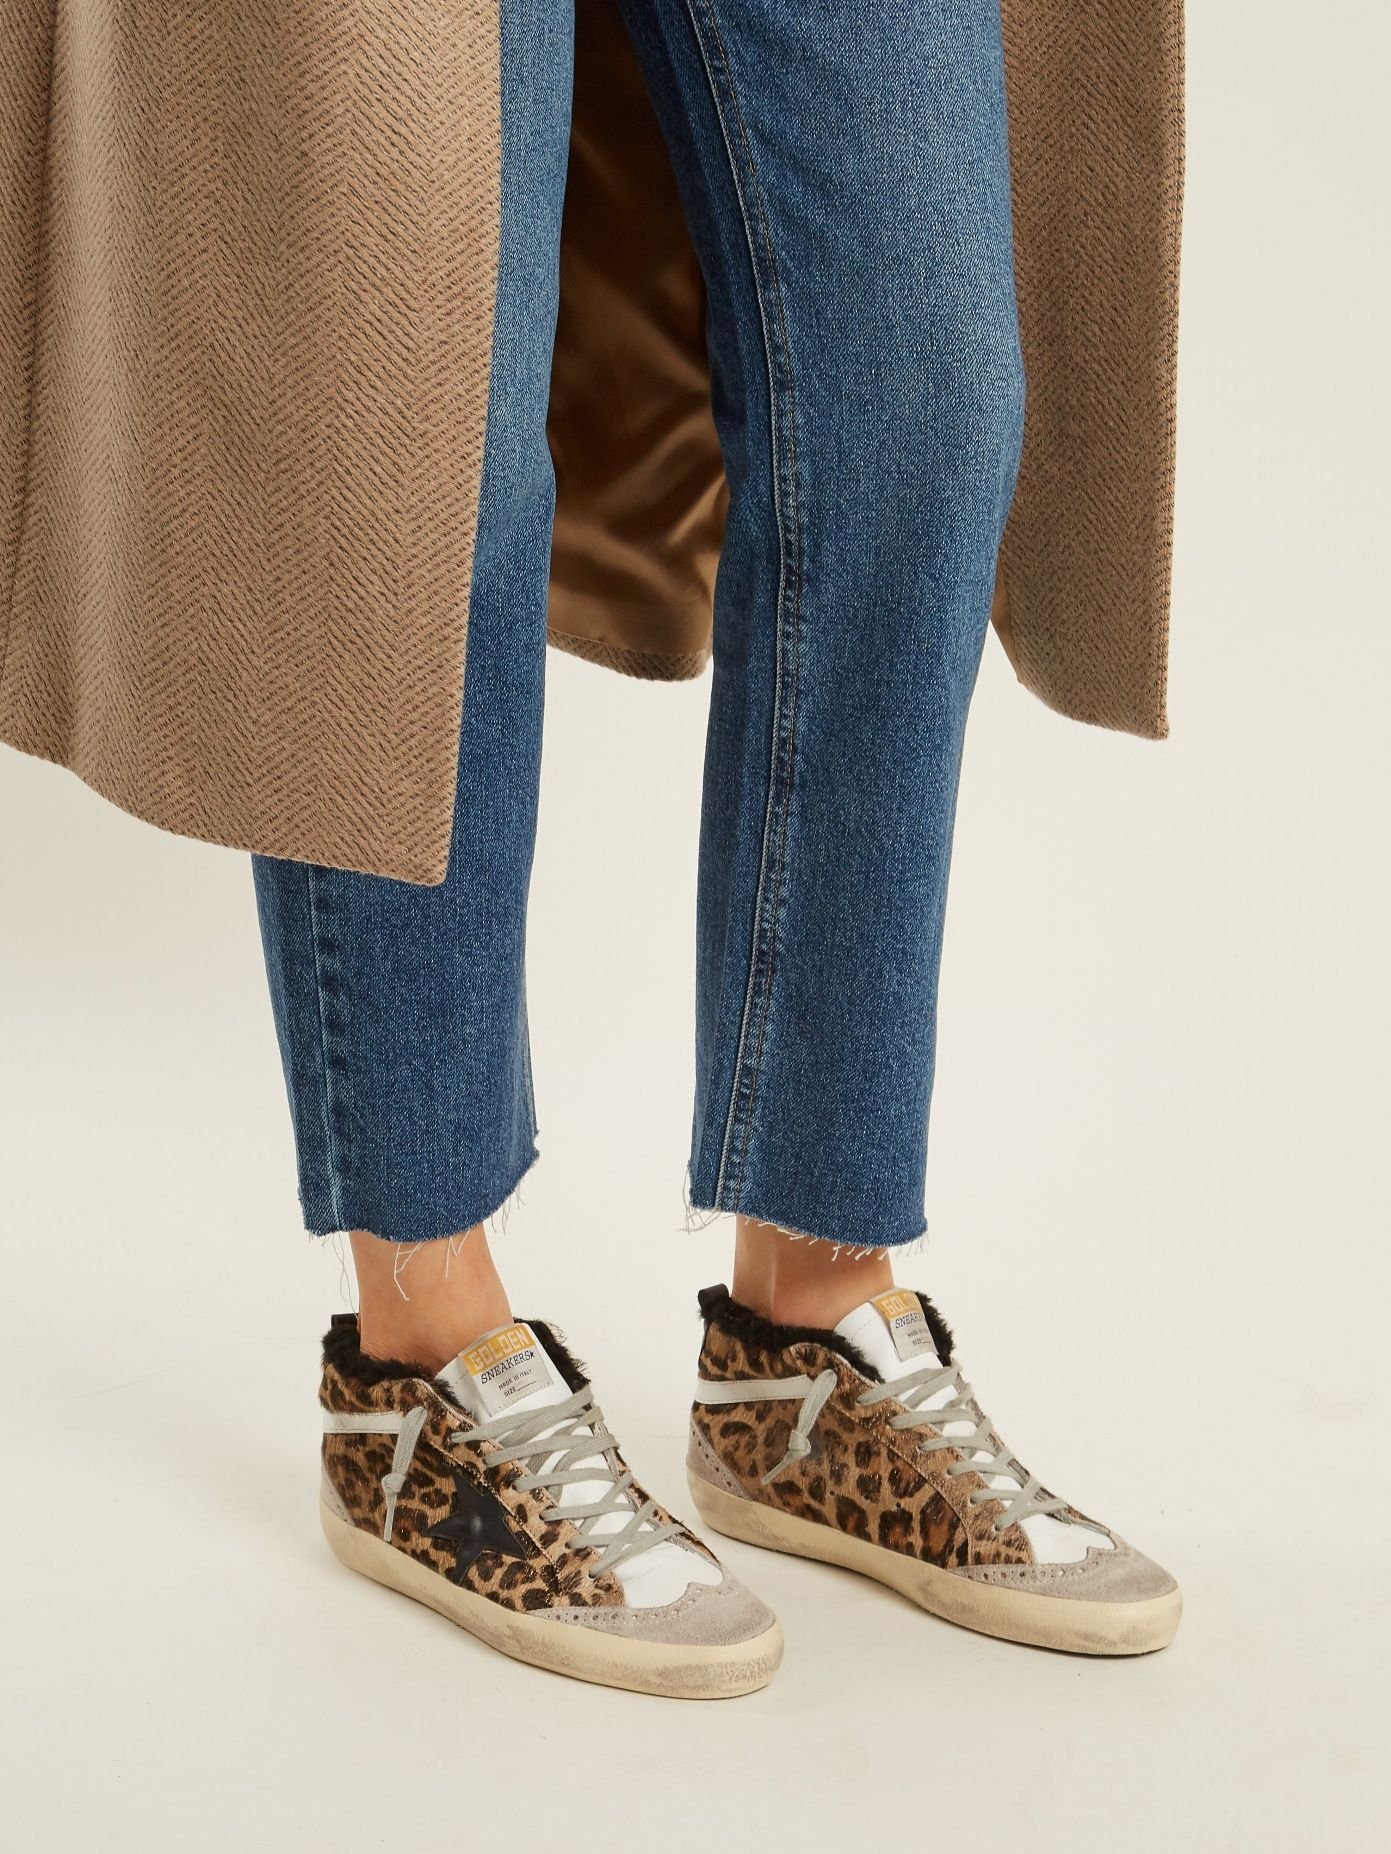 aa1731ed2aaf Golden Goose Deluxe Brand Mid Star leopard-print shearling-lined trainers  at MATCHESFASHION.